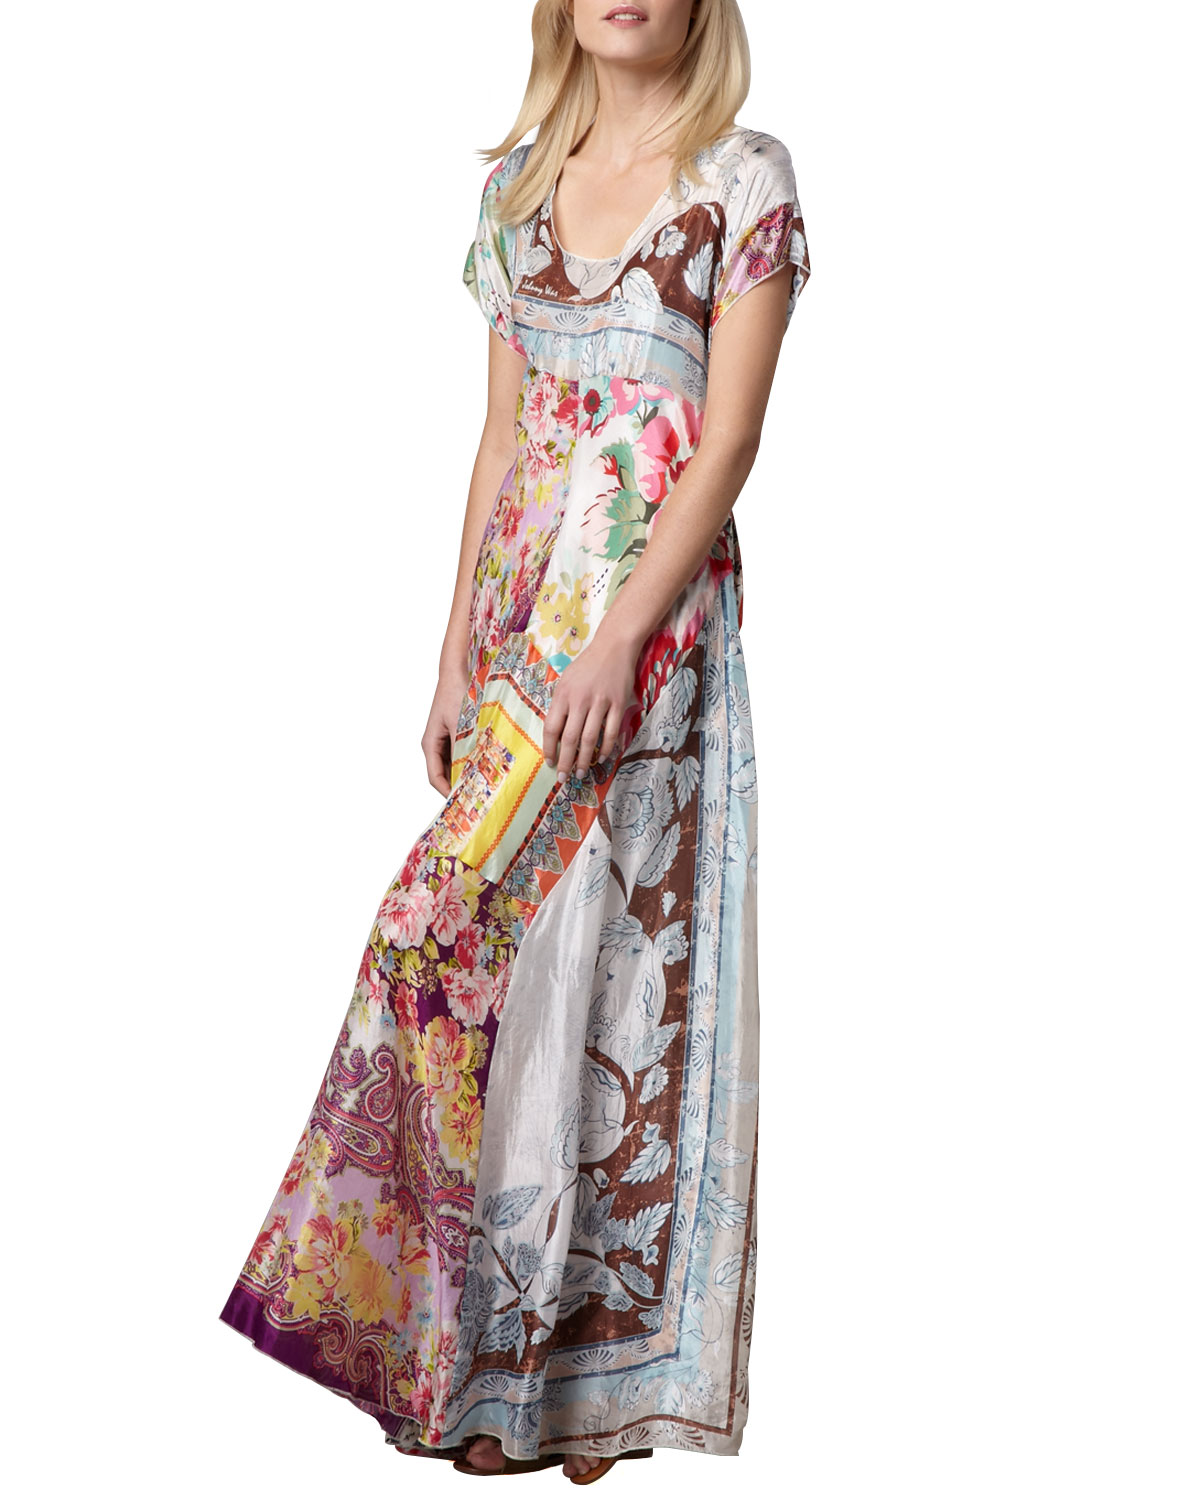 Printed Georgette Maxi Dress, Womens   Johnny Was Collection   Multi (2X